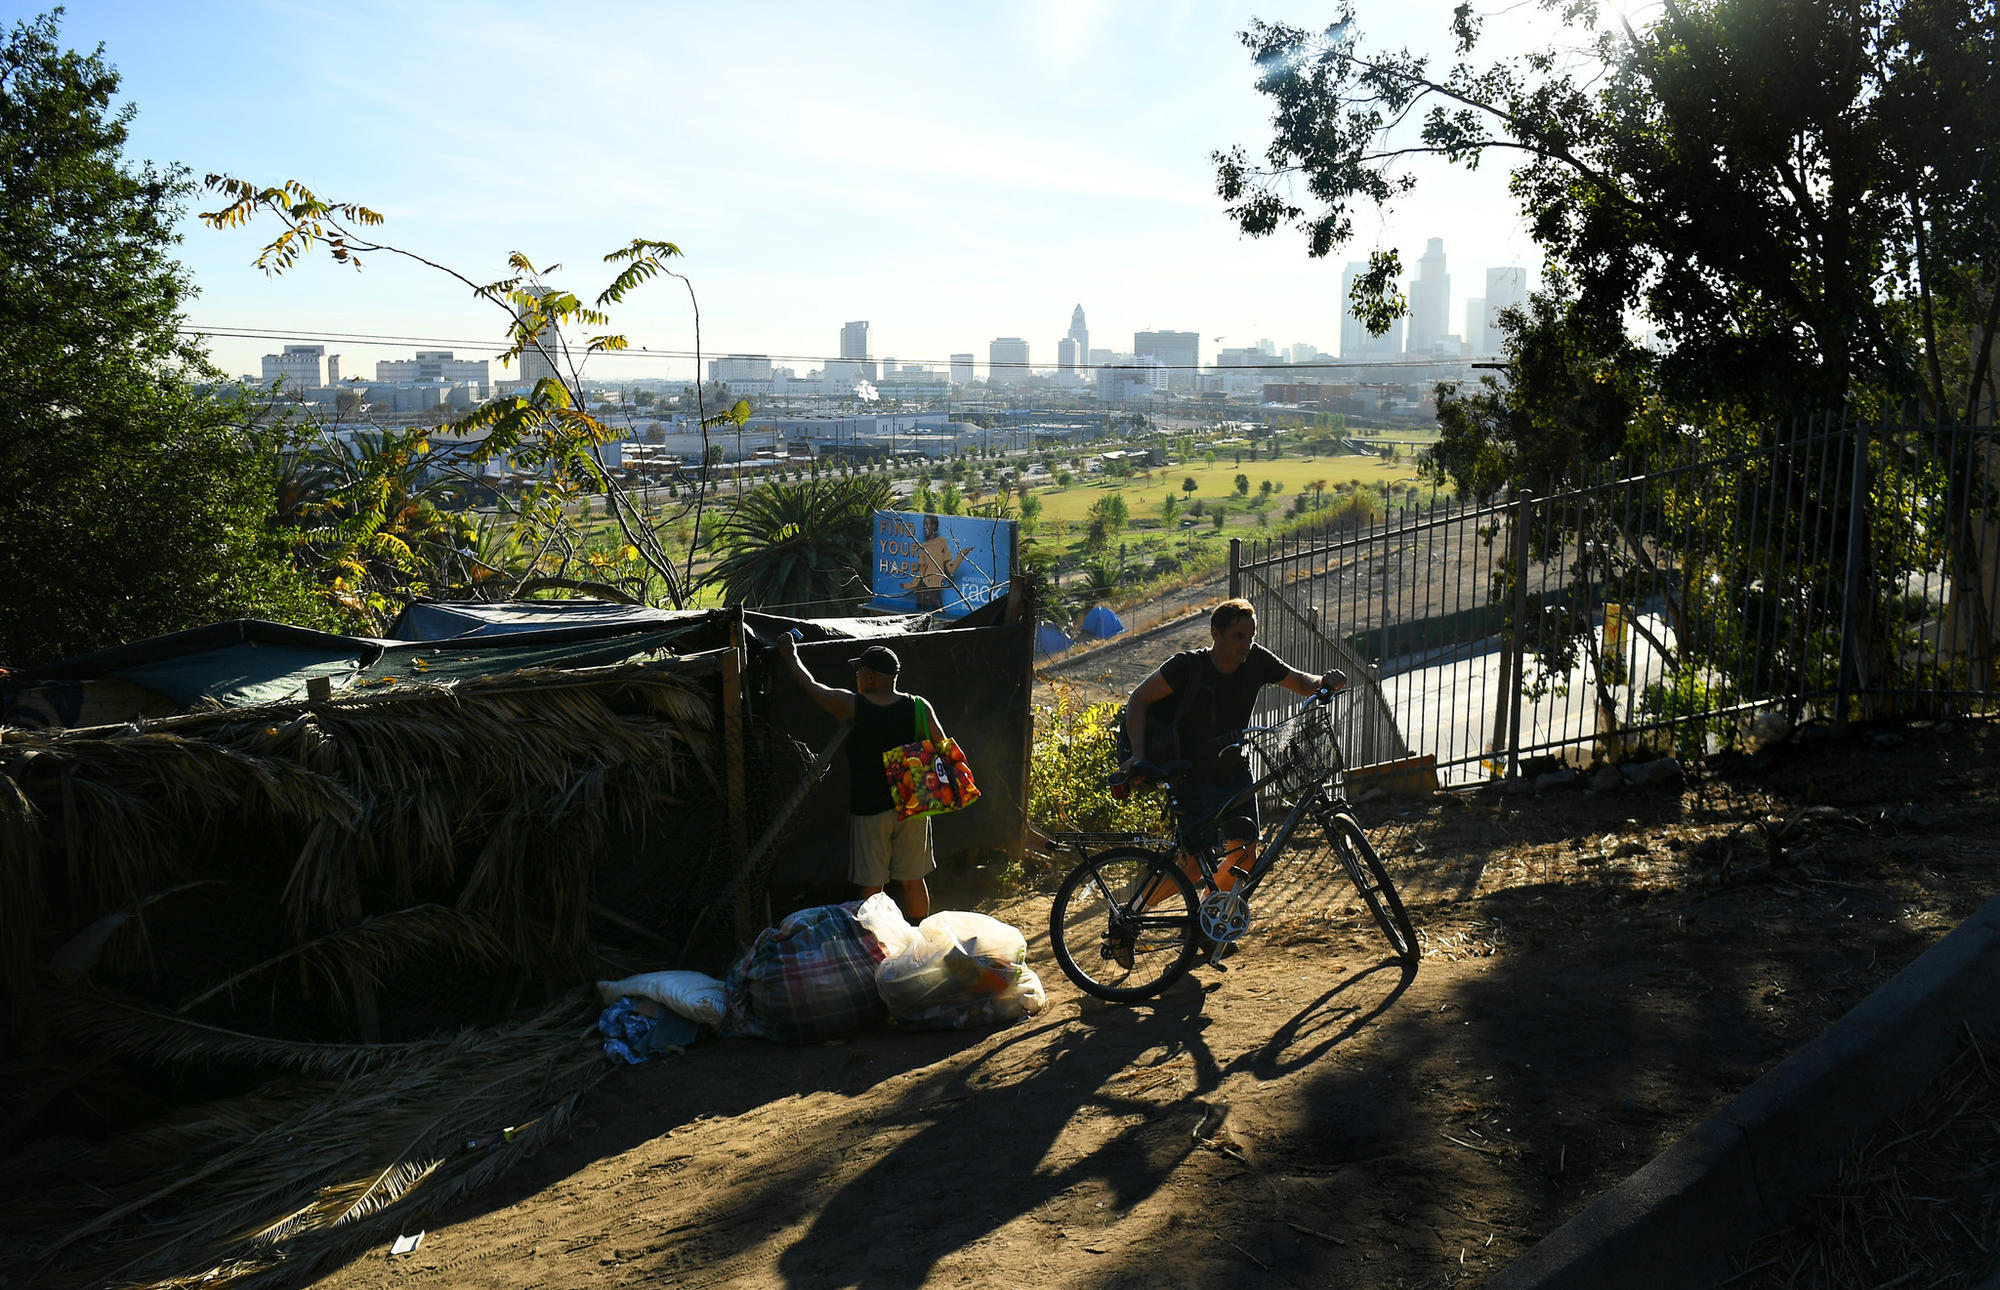 Homeless in Elysian Park